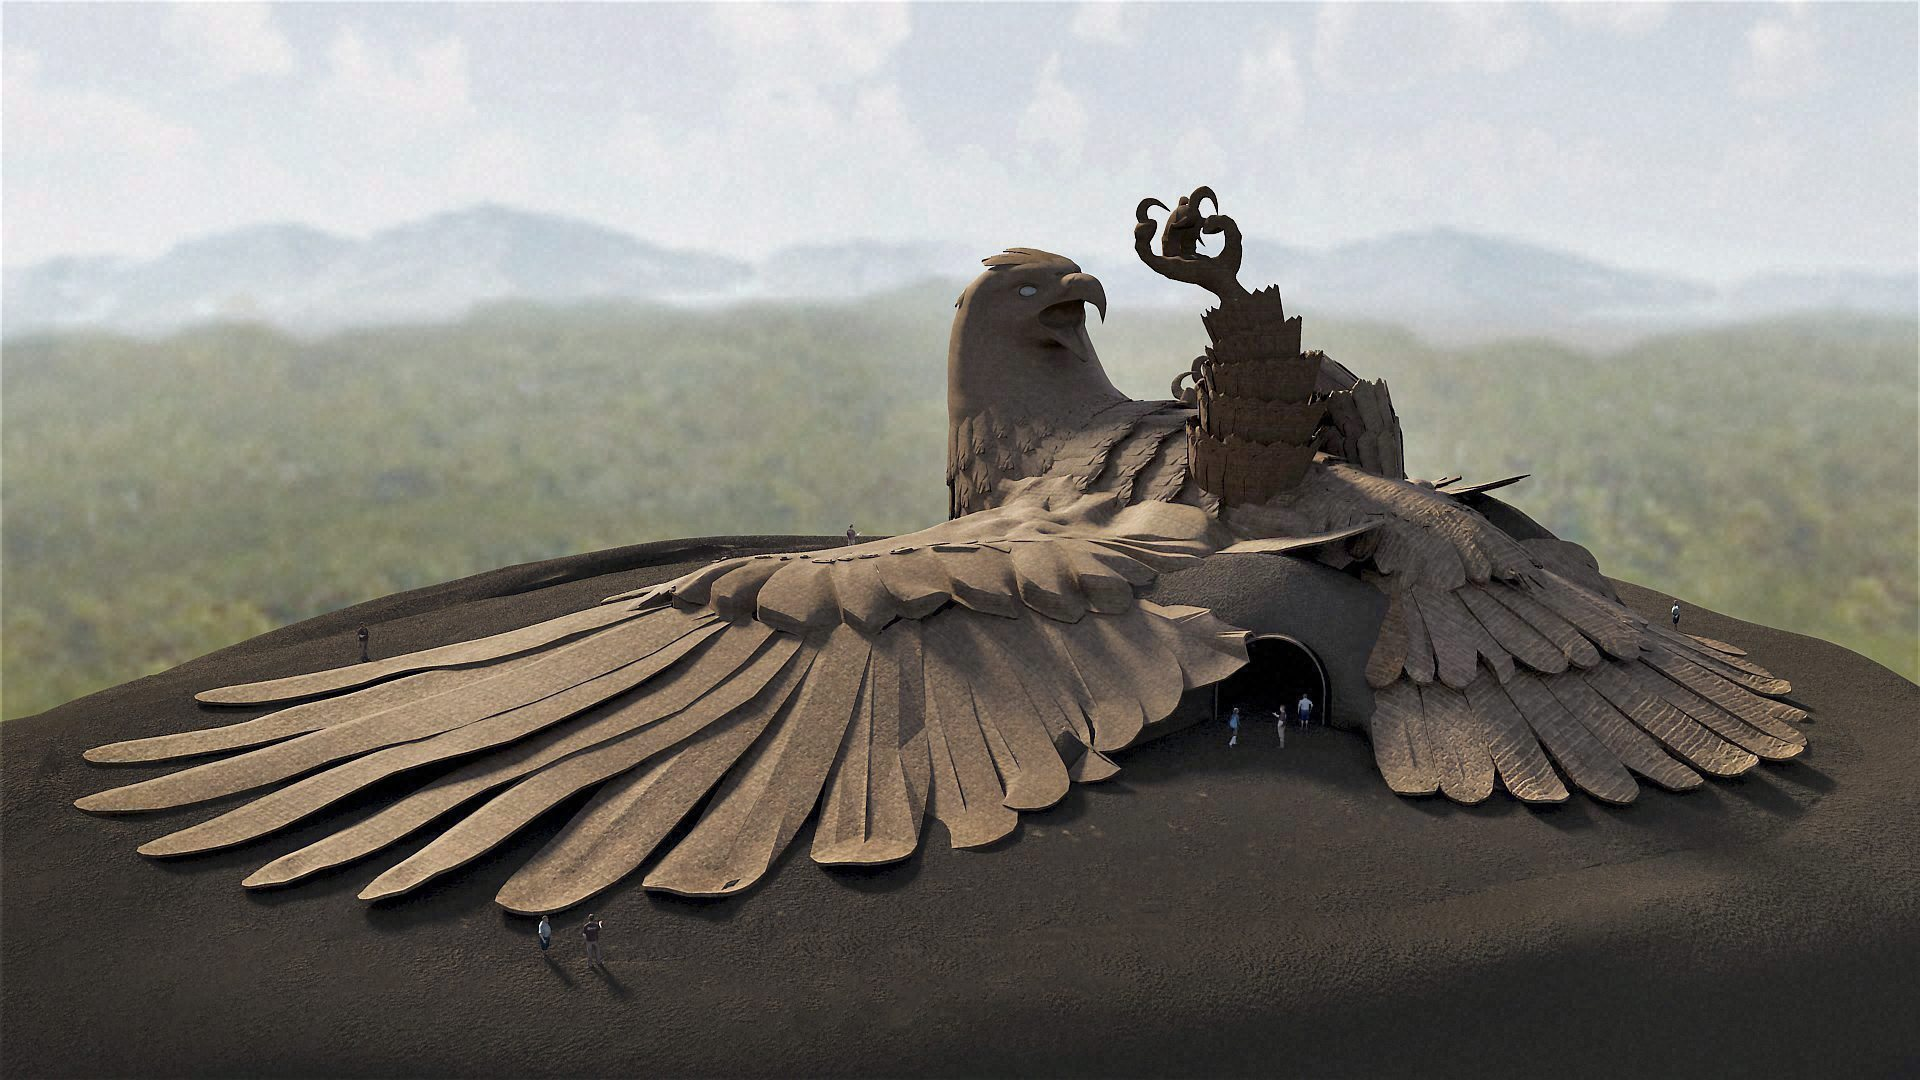 jatayupura large bird sculpture kerala